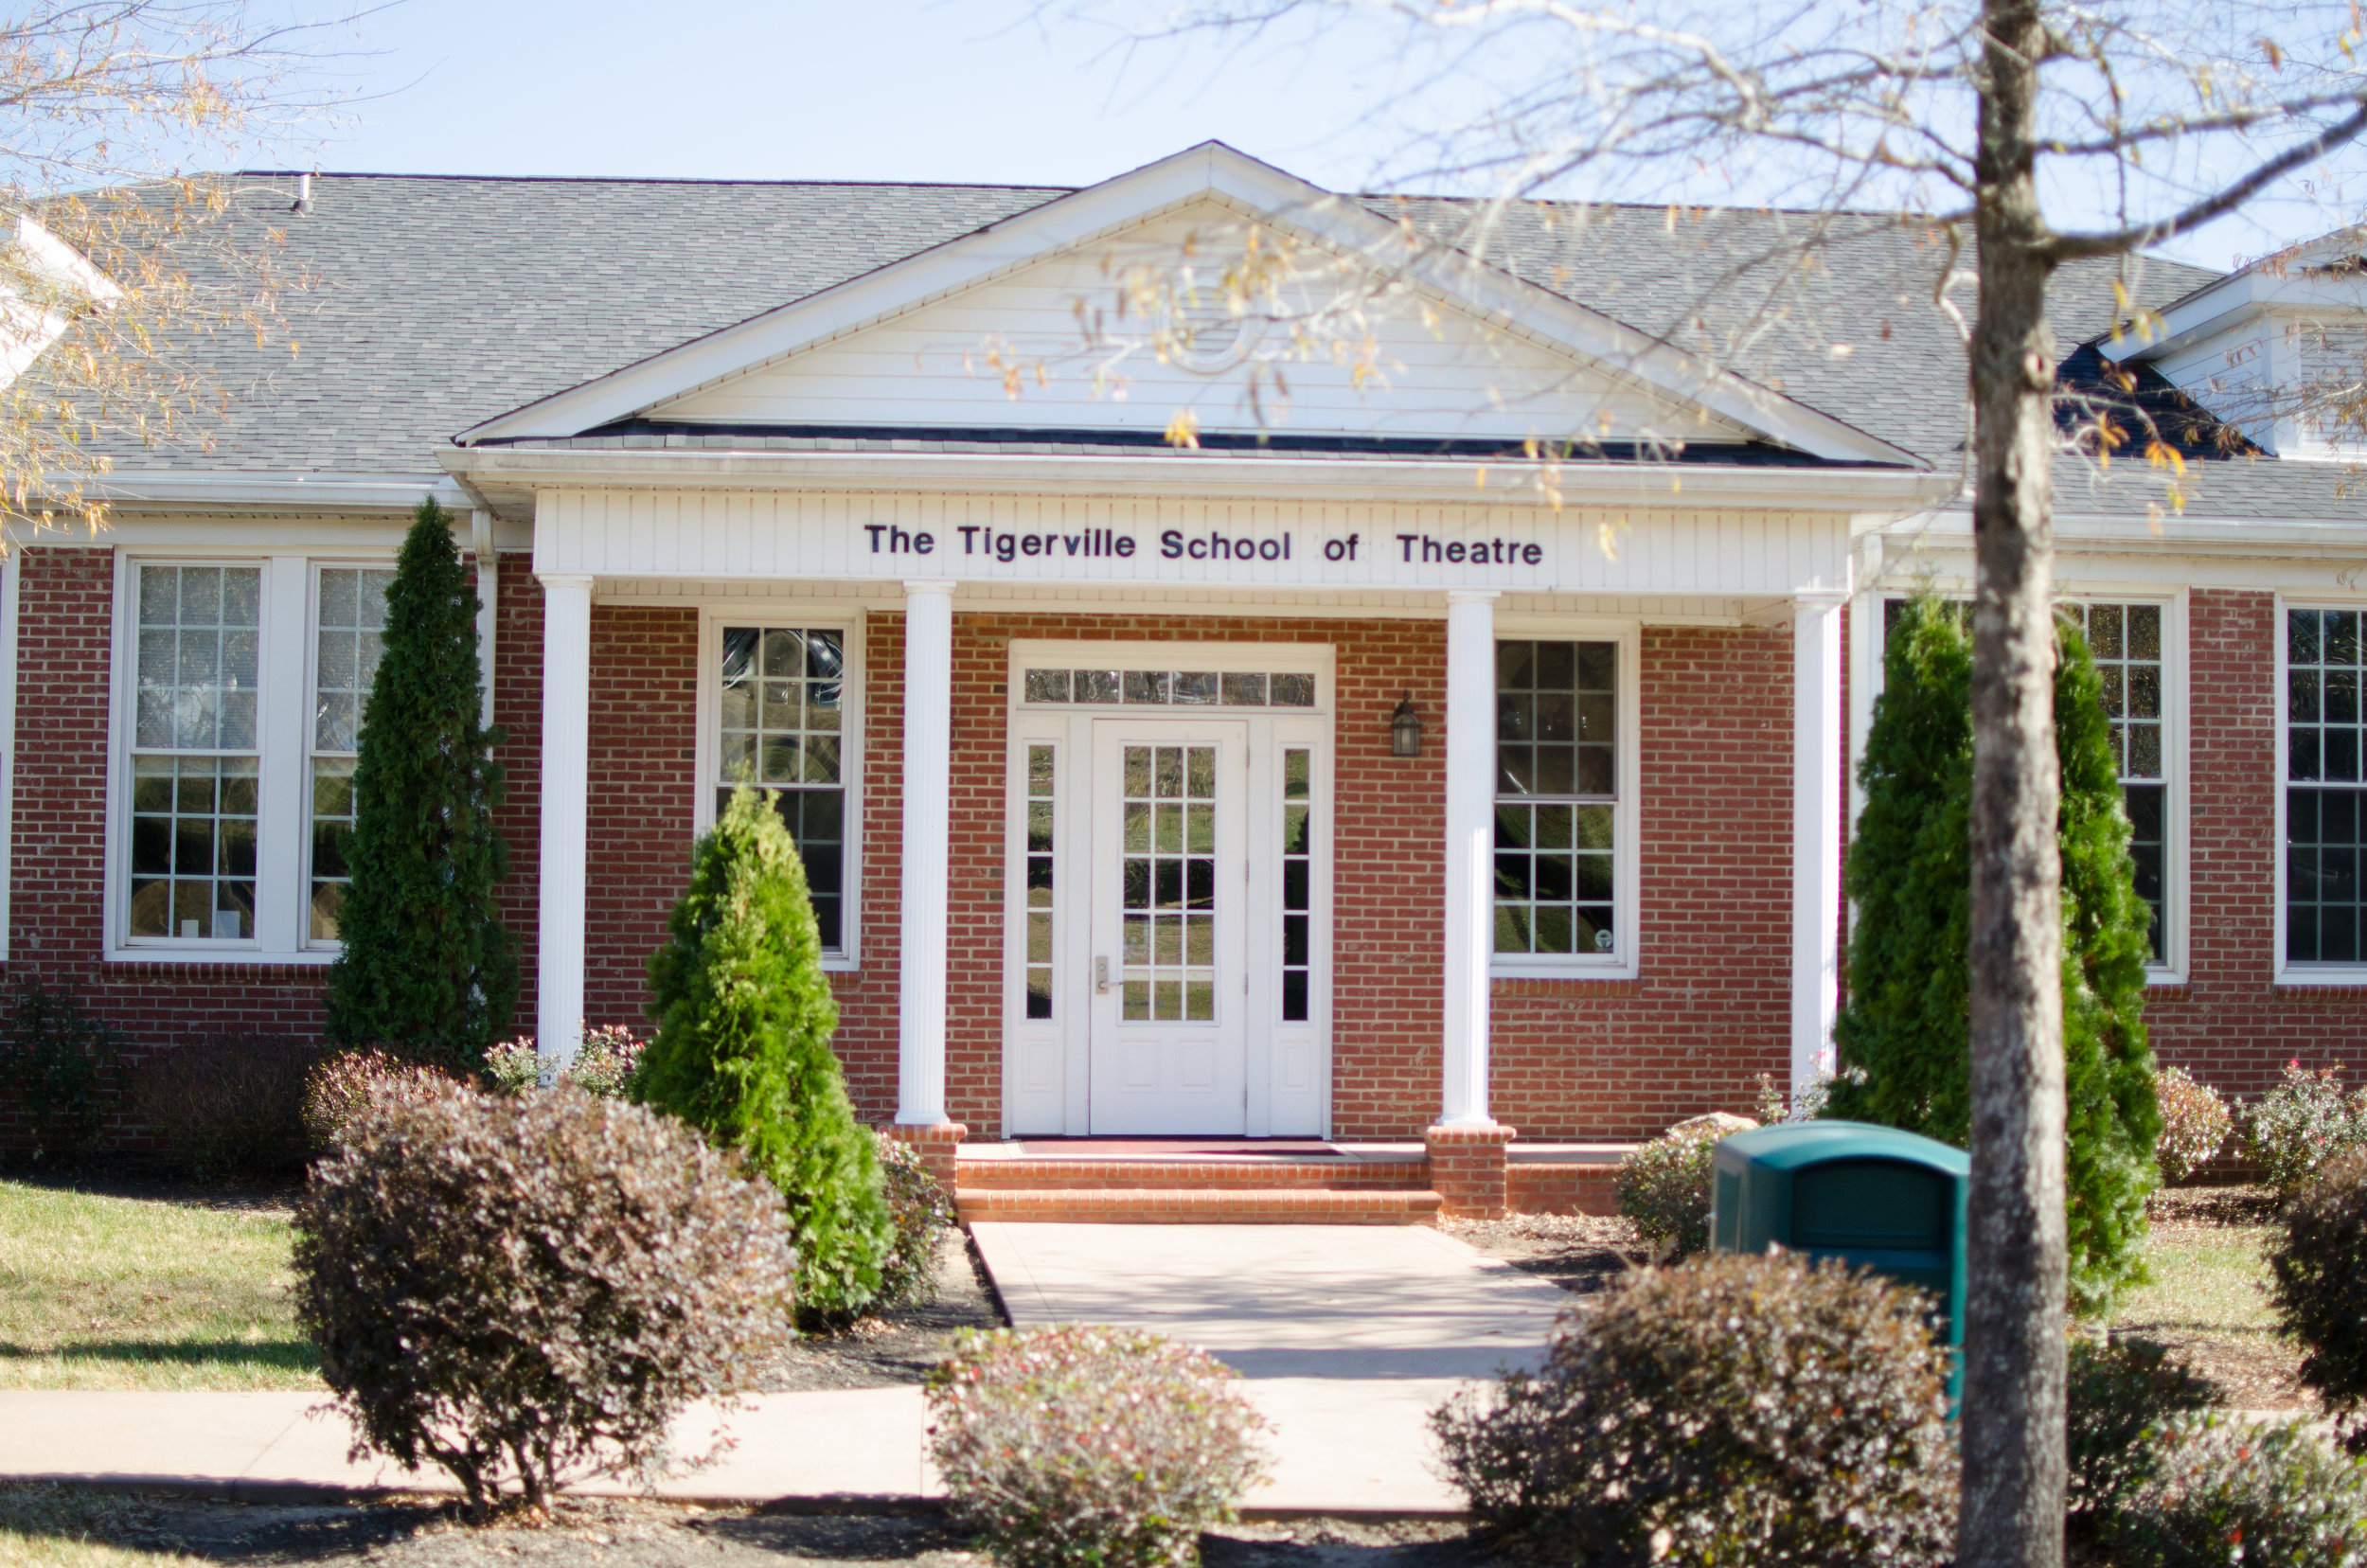 The school of theater and the box office are located in the same building. Just two buildings from the left of Einstein's, students will be able to purchase cultural event tickets and attend theater classes. You can find this building from the Hayes Ministry entrance by turning left at the four-way stop and it's the third building on the right.